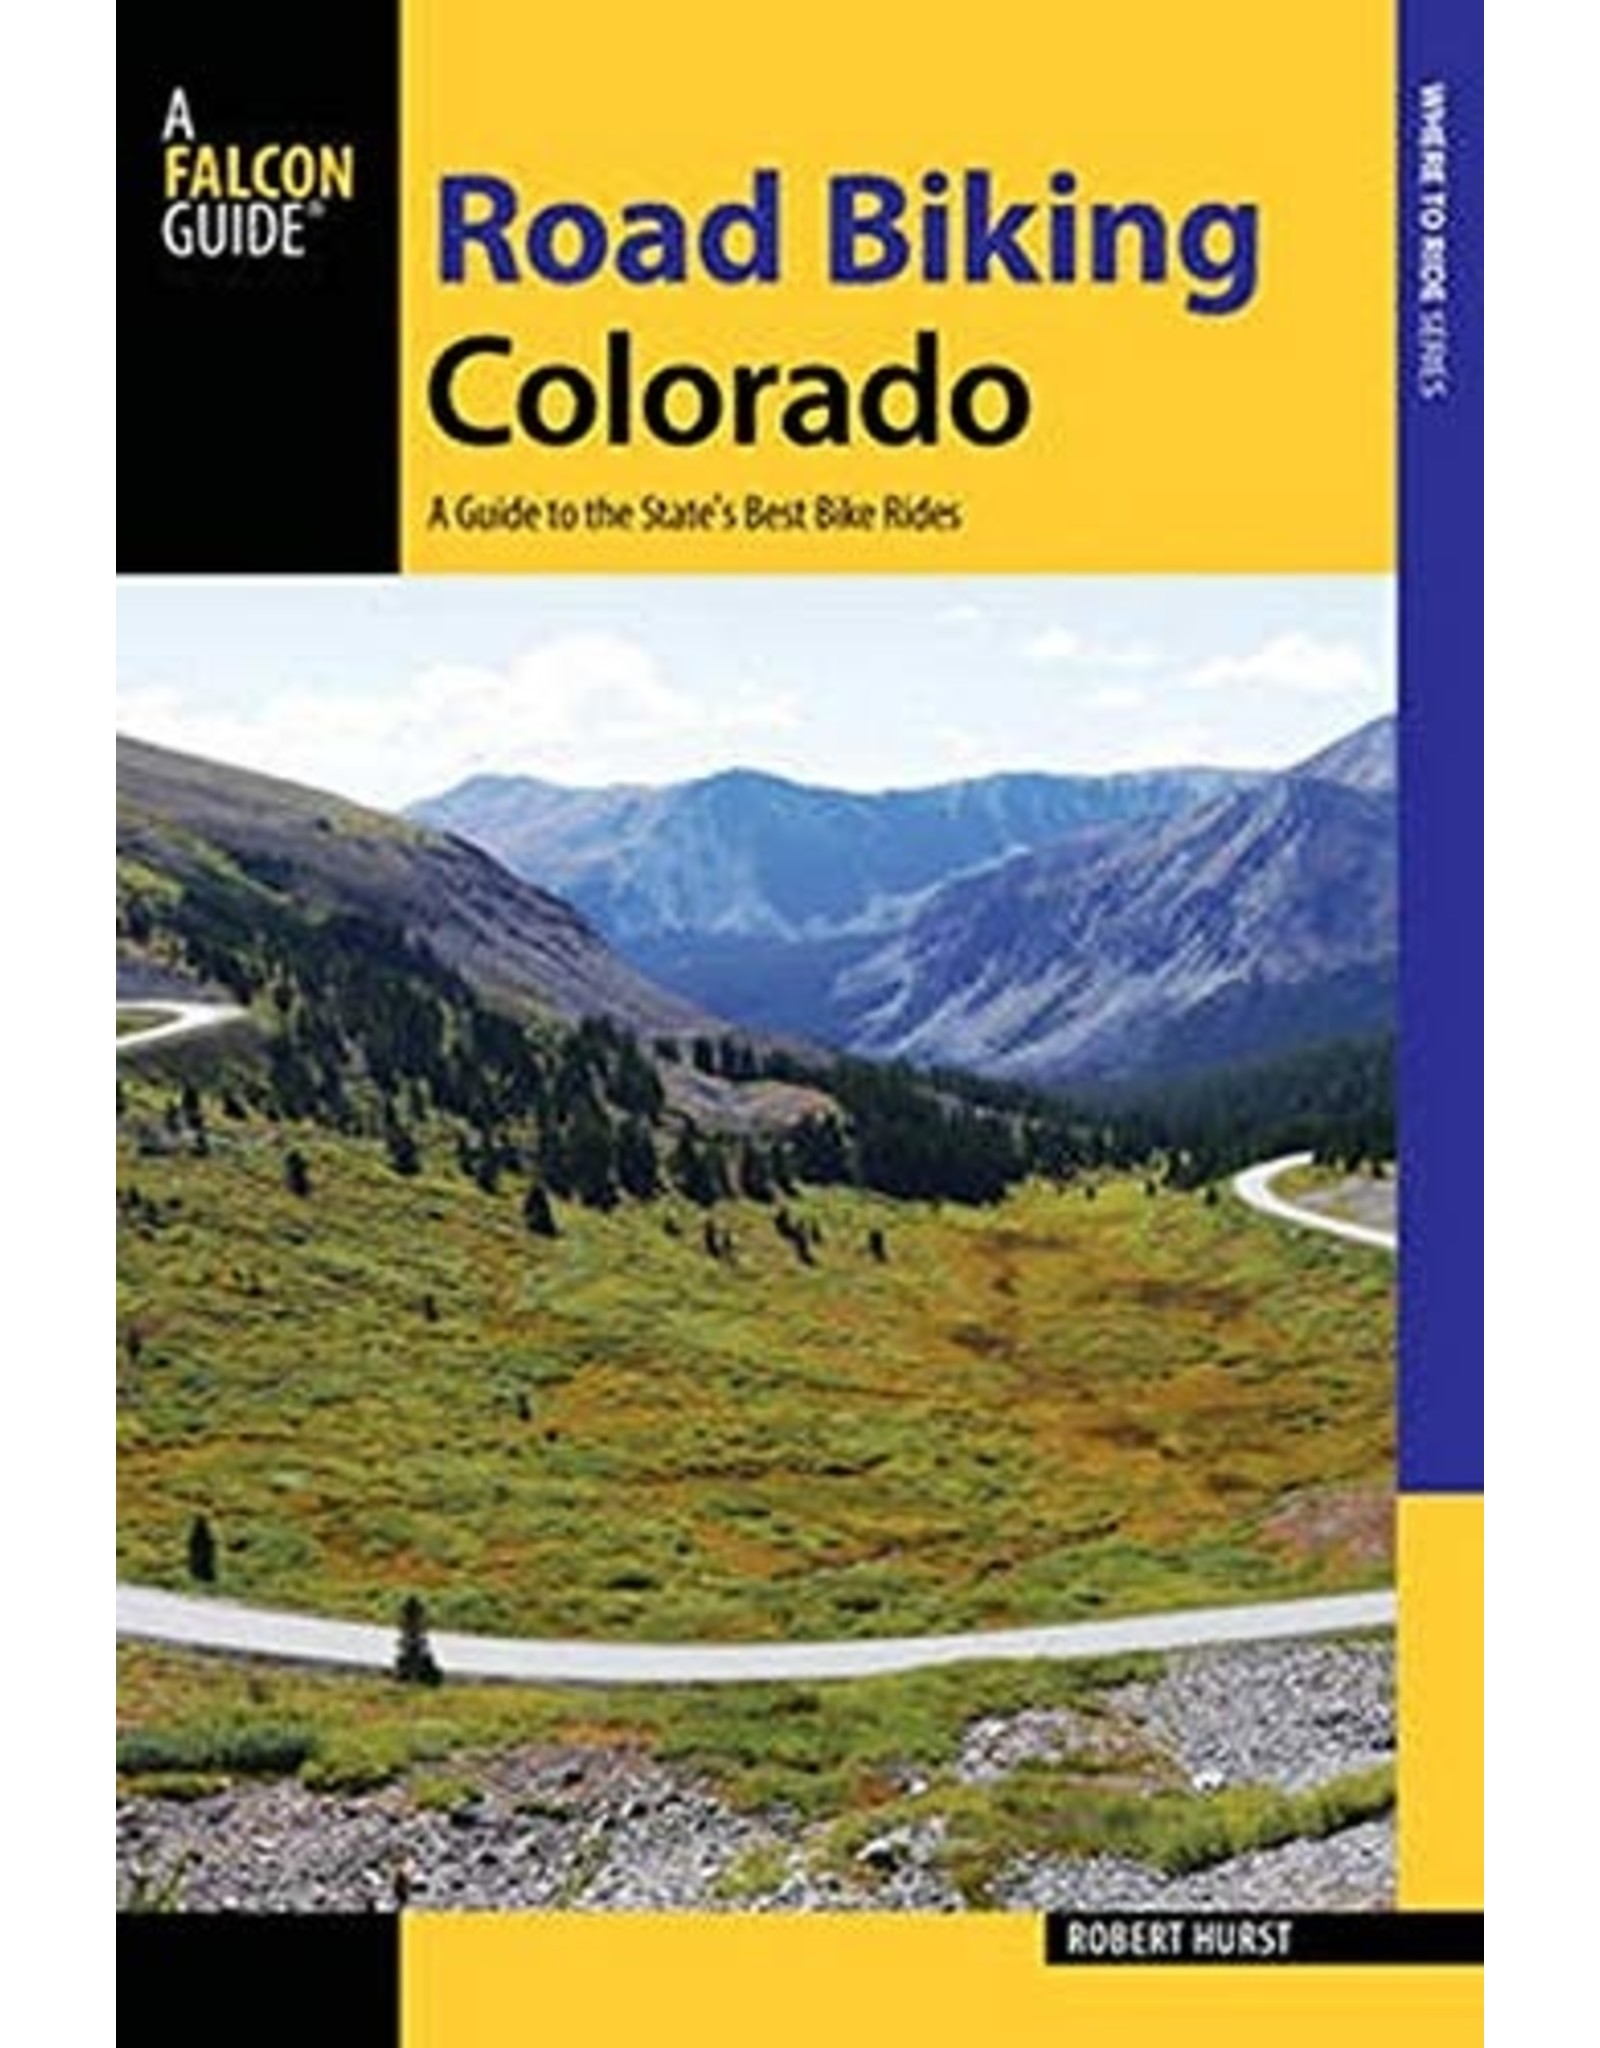 NATIONAL BOOK NETWRK Road Biking Colorado: A Guide to the State's Best Bike Rides (Road Biking Series) Paperback – Illustrated